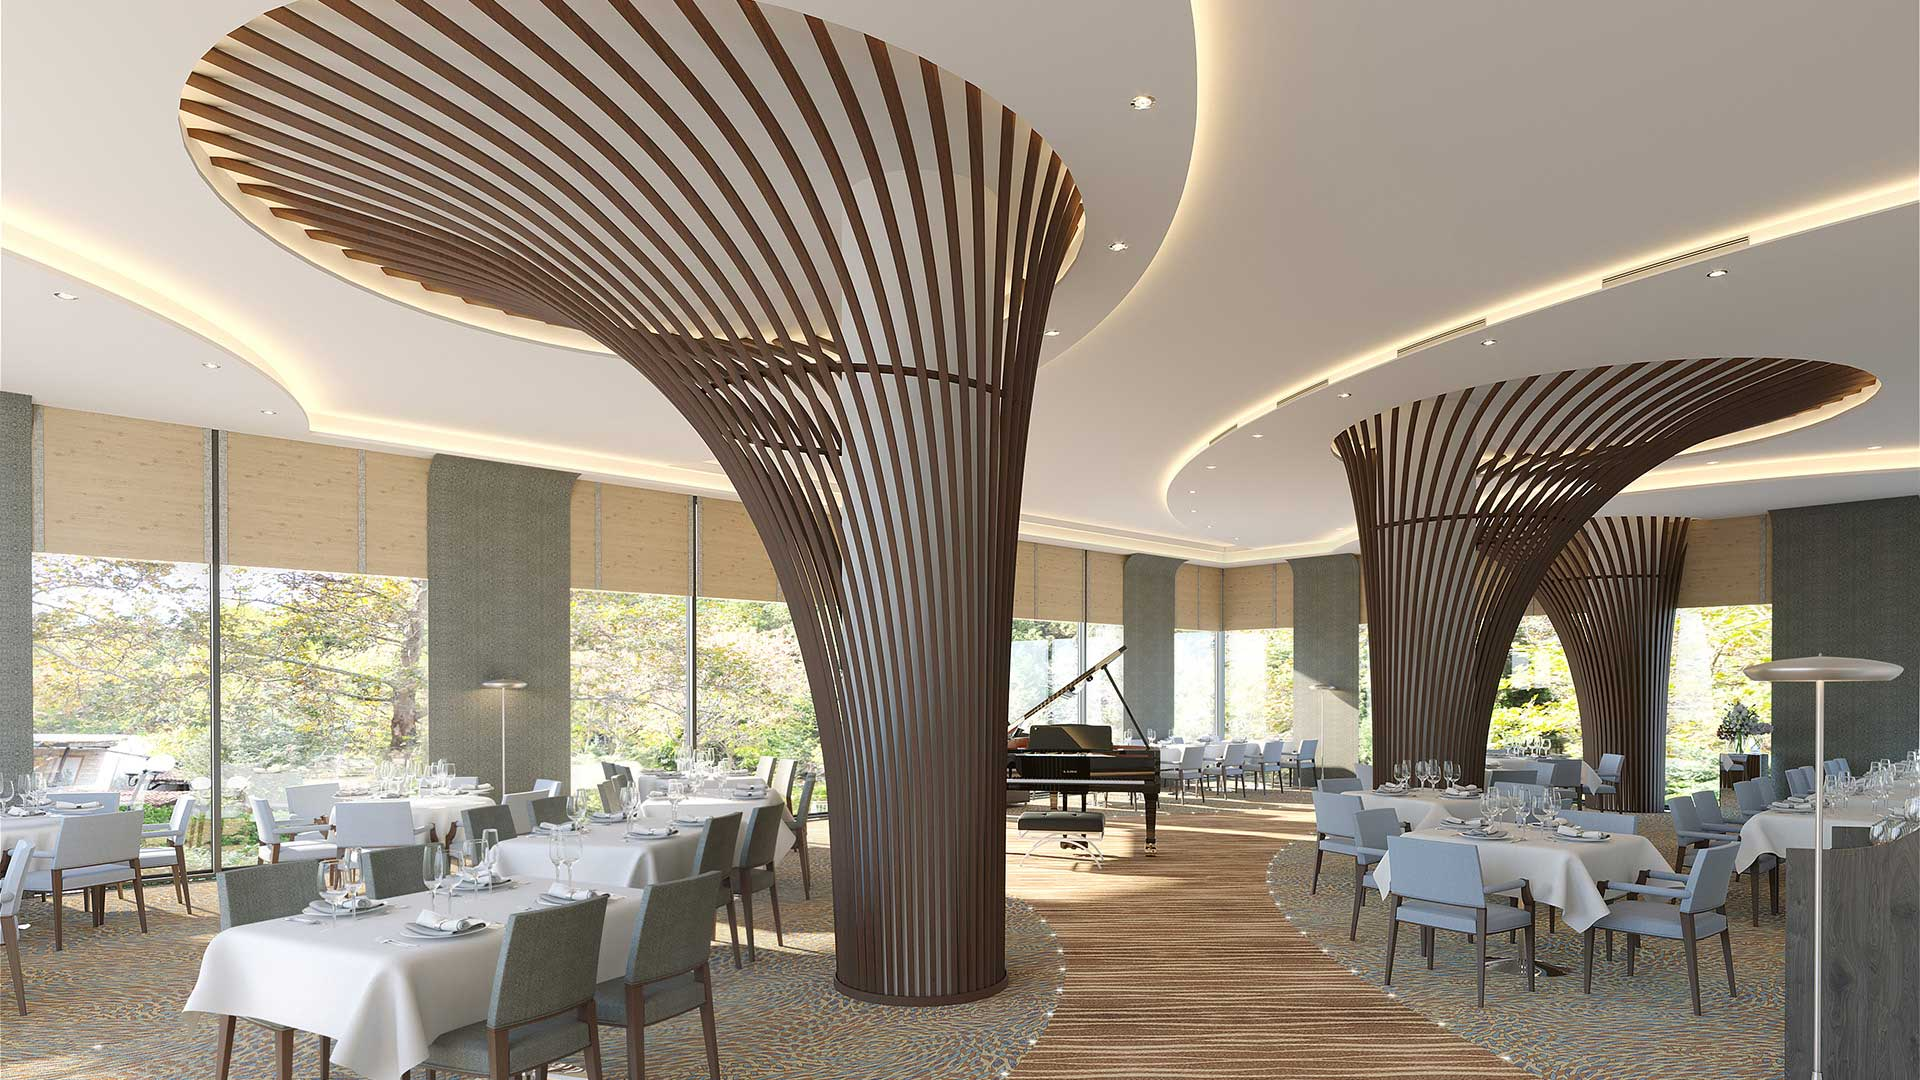 Design Interieur Architecture 3d Perspective Interior Architecture 3d Restaurant